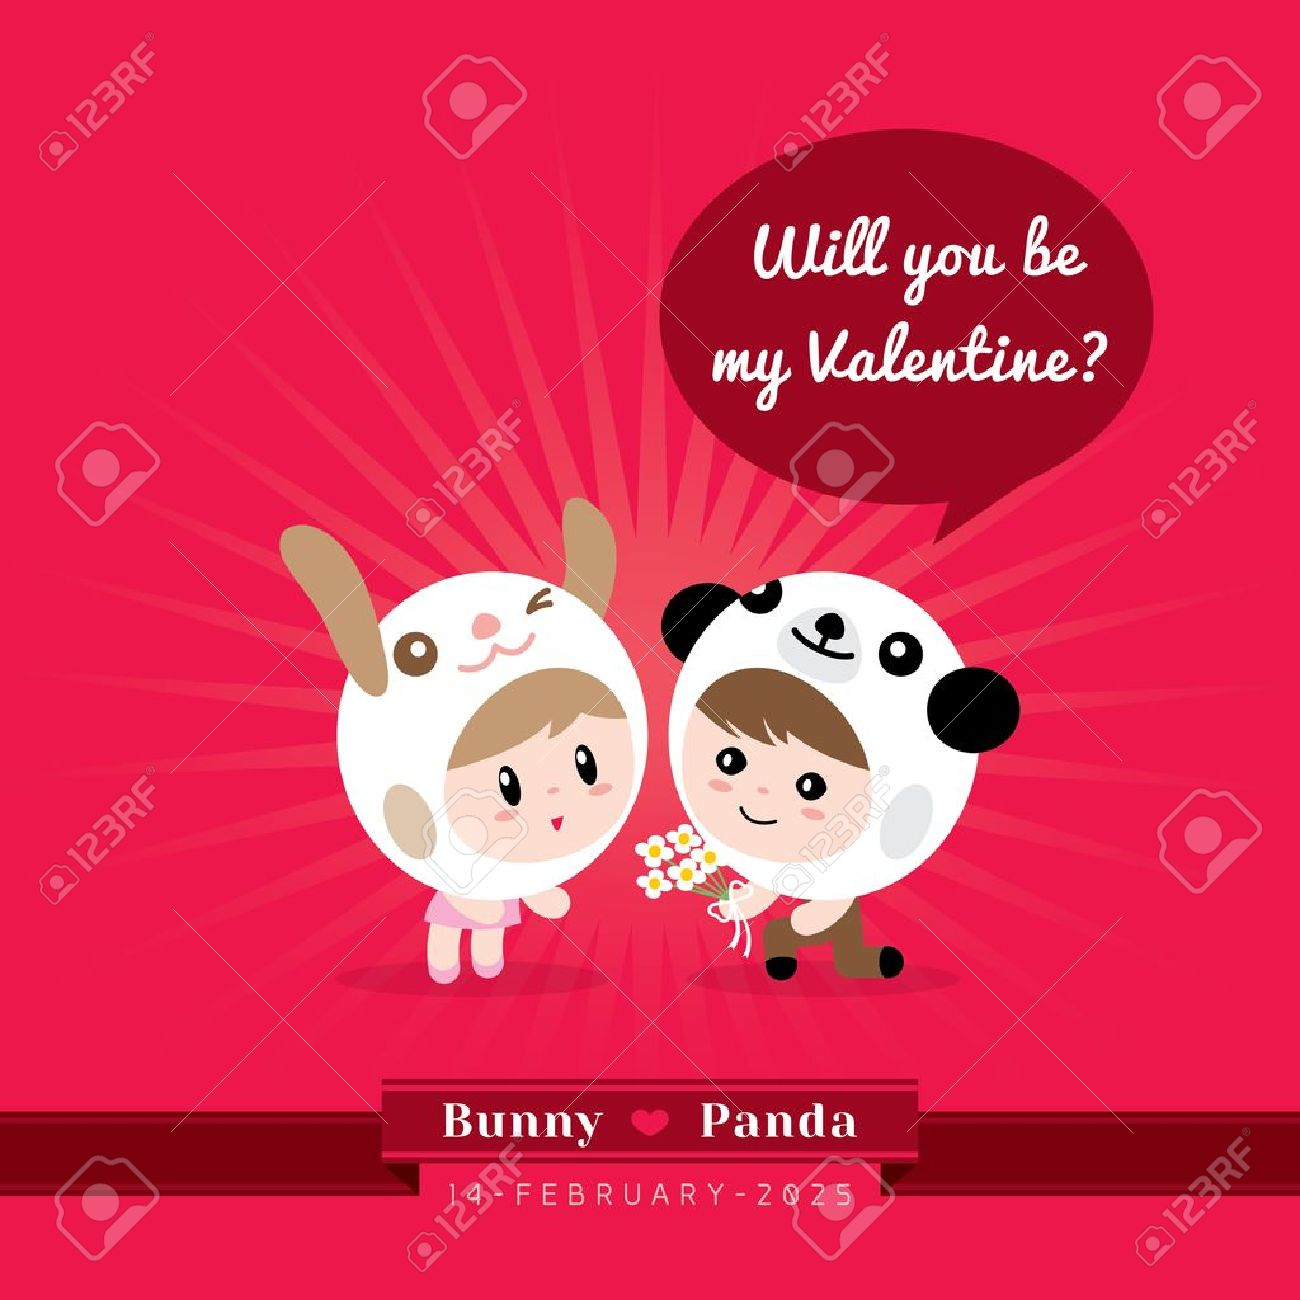 Cute Kawaii Couple Character In Rabbit And Panda Costume With Valentineu0027s  Concept Illustration Stock Vector